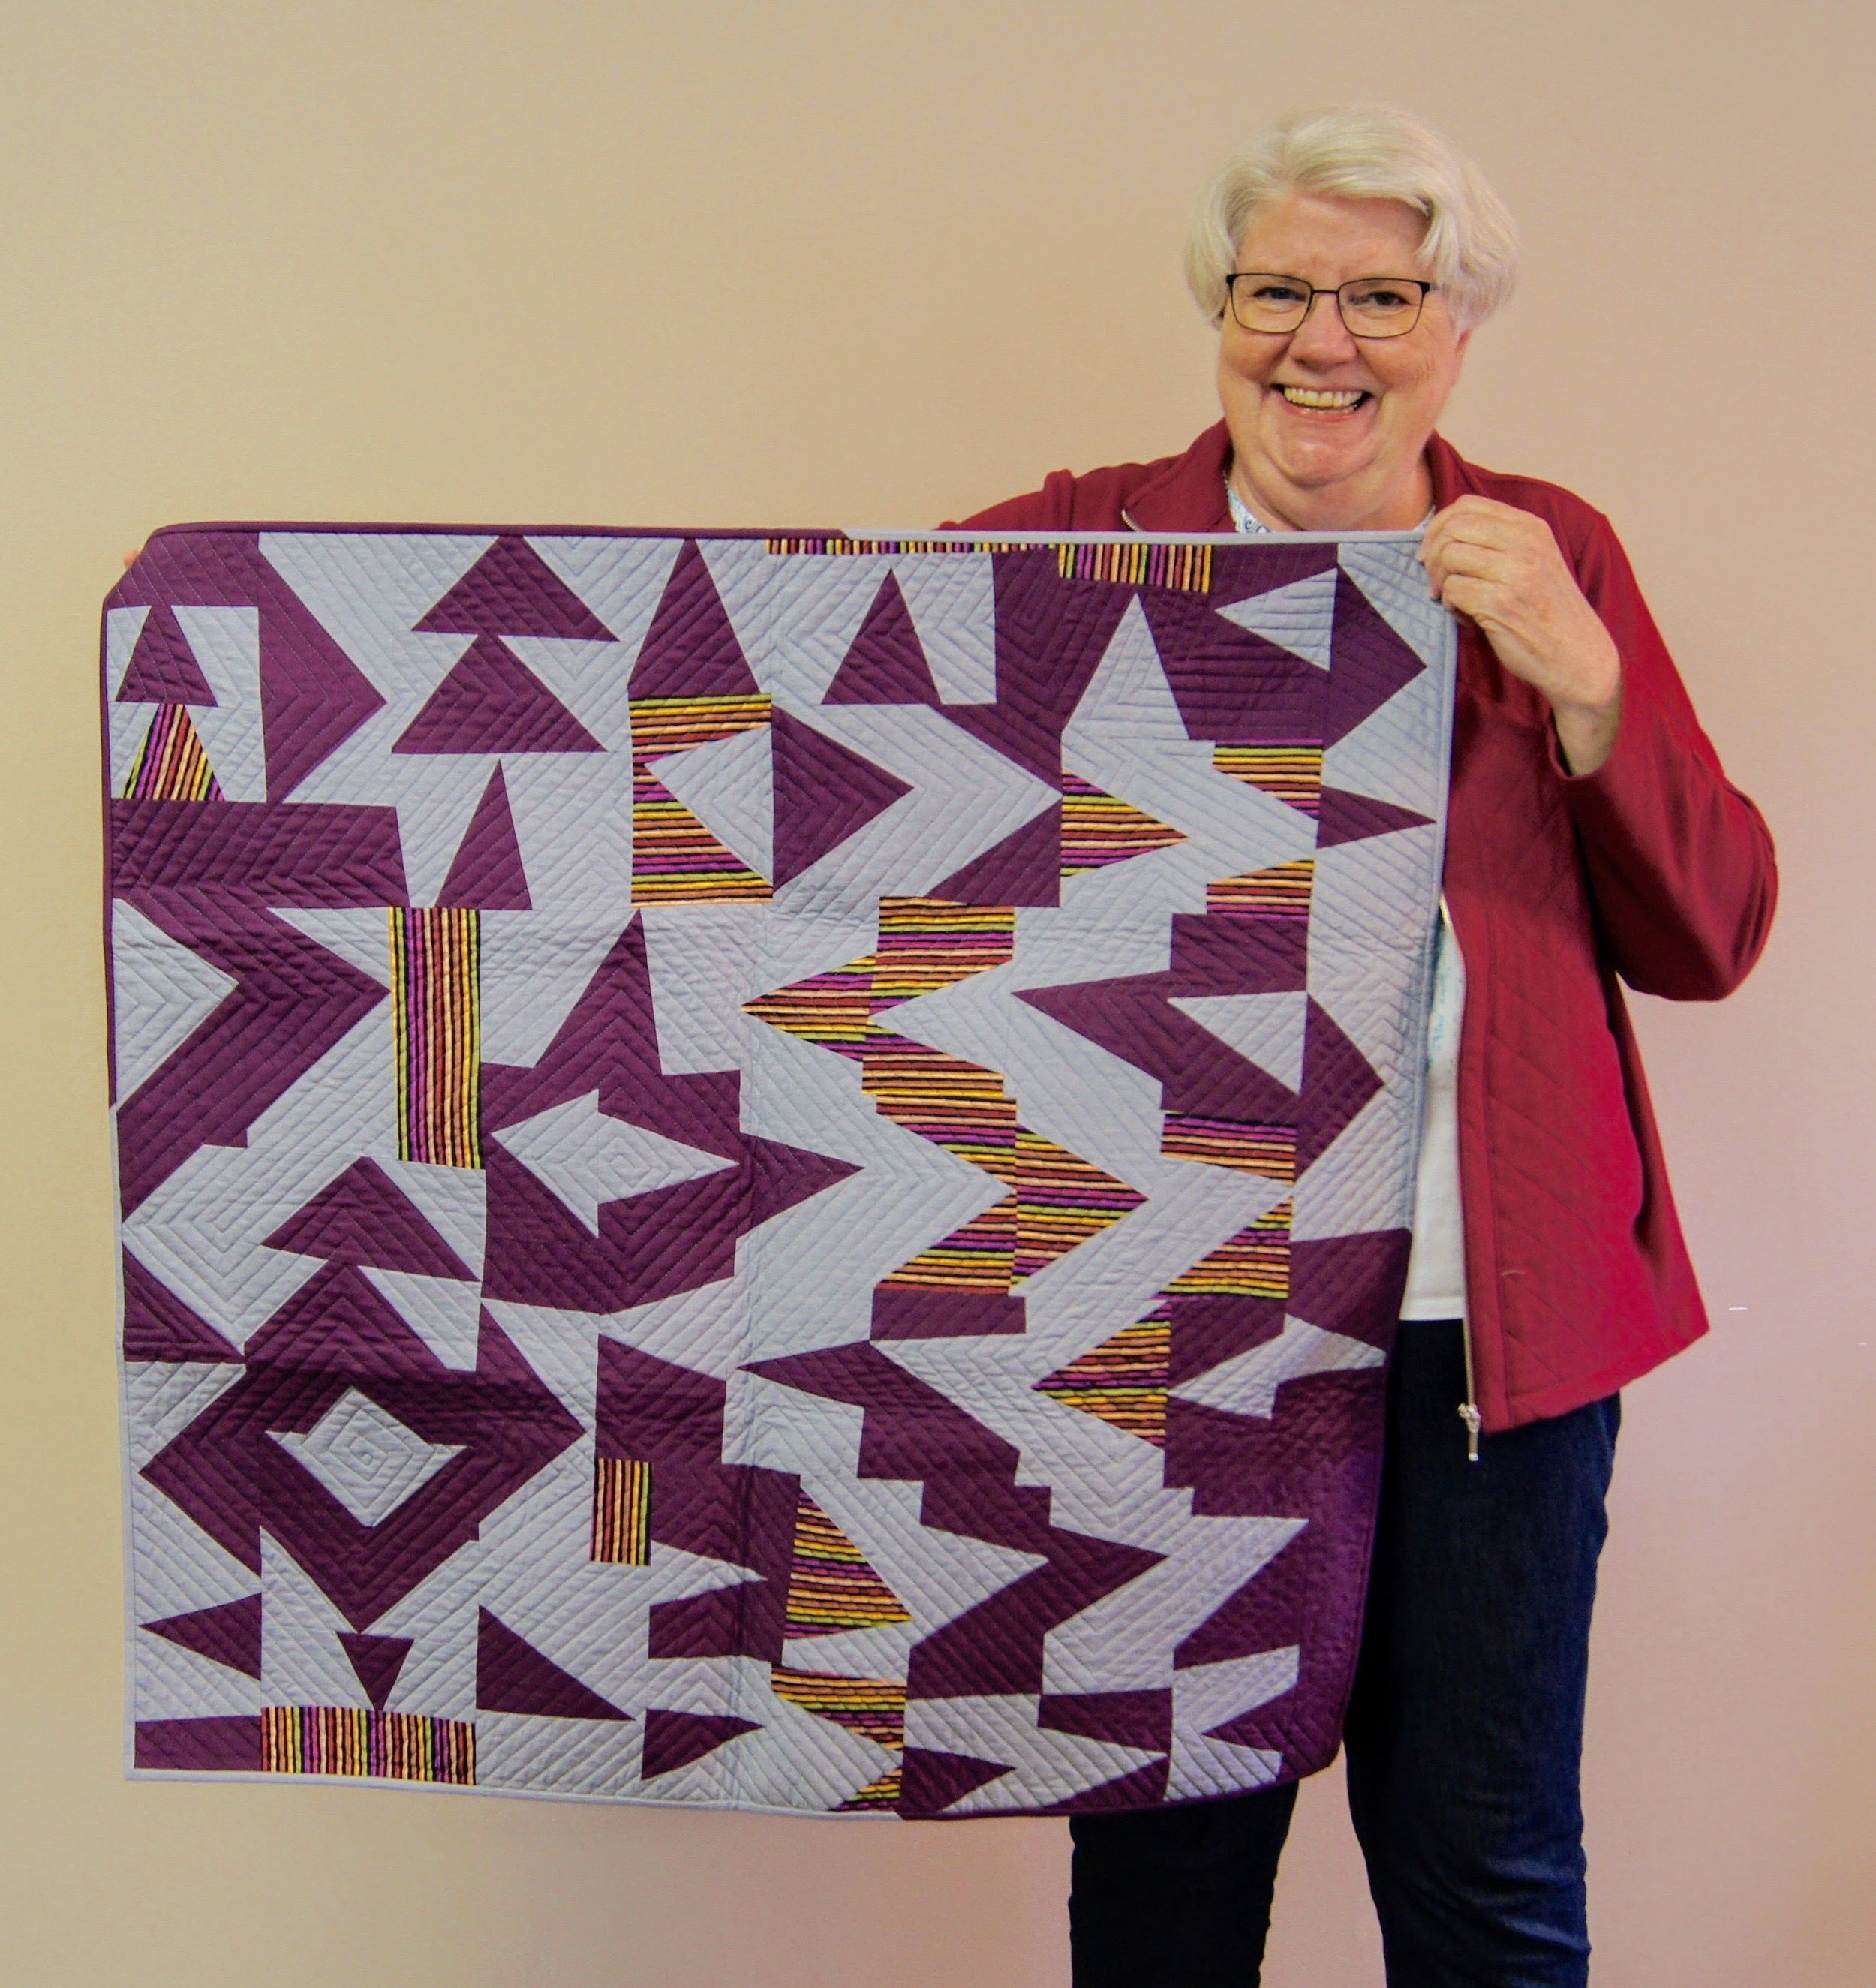 Jean Larson made this quilt with modern improv techniques